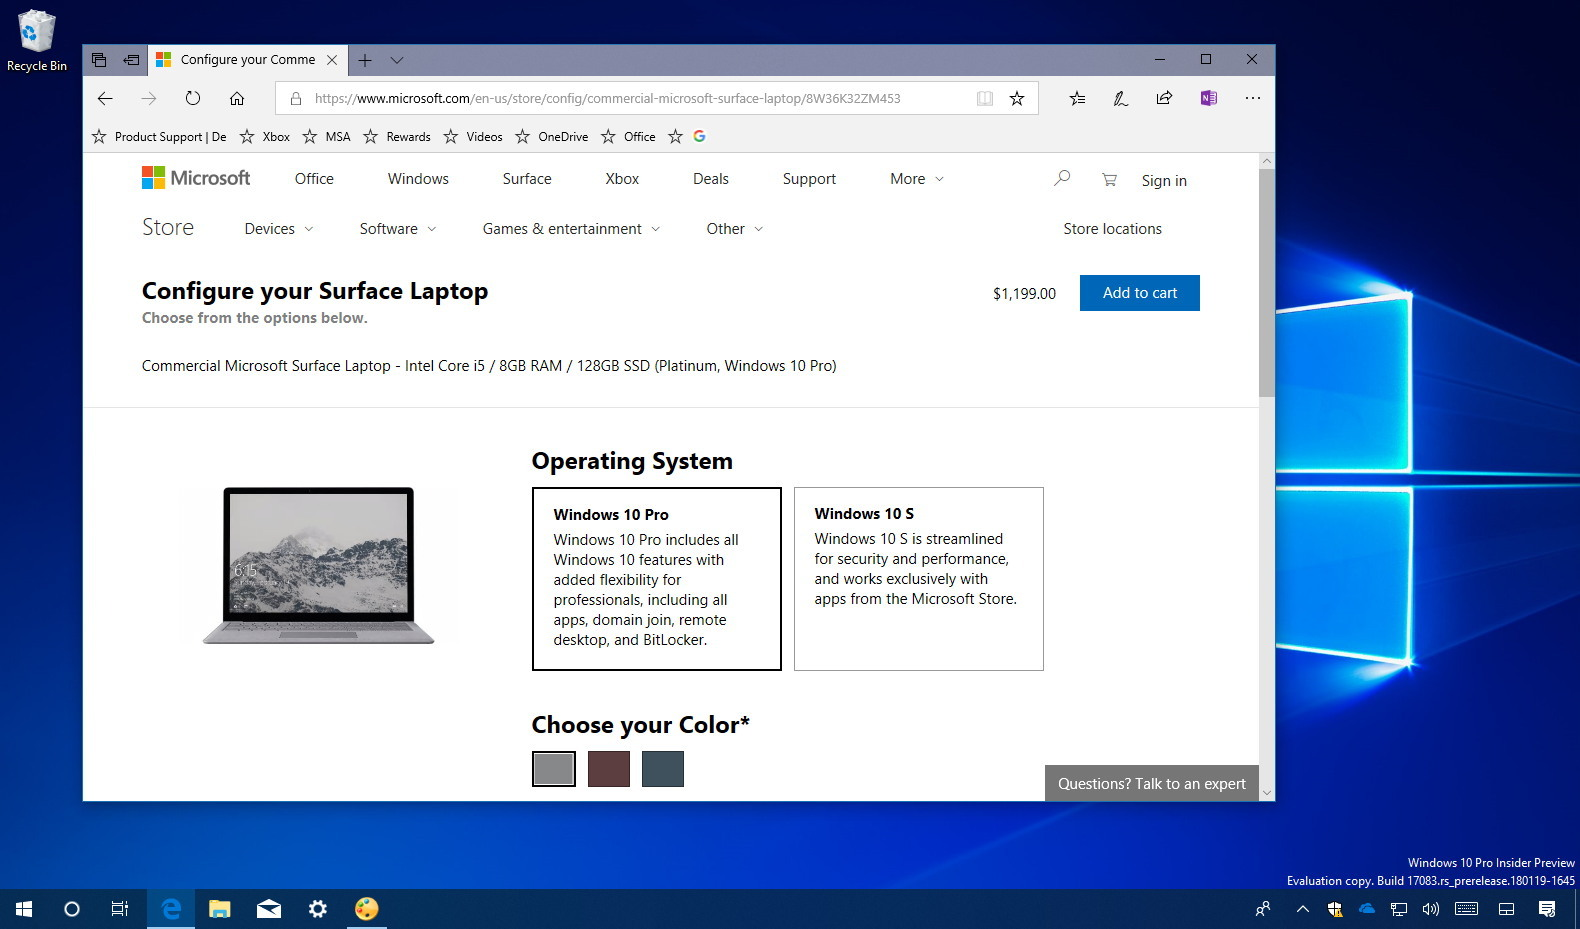 Surface Laptop with Windows 10 Pro